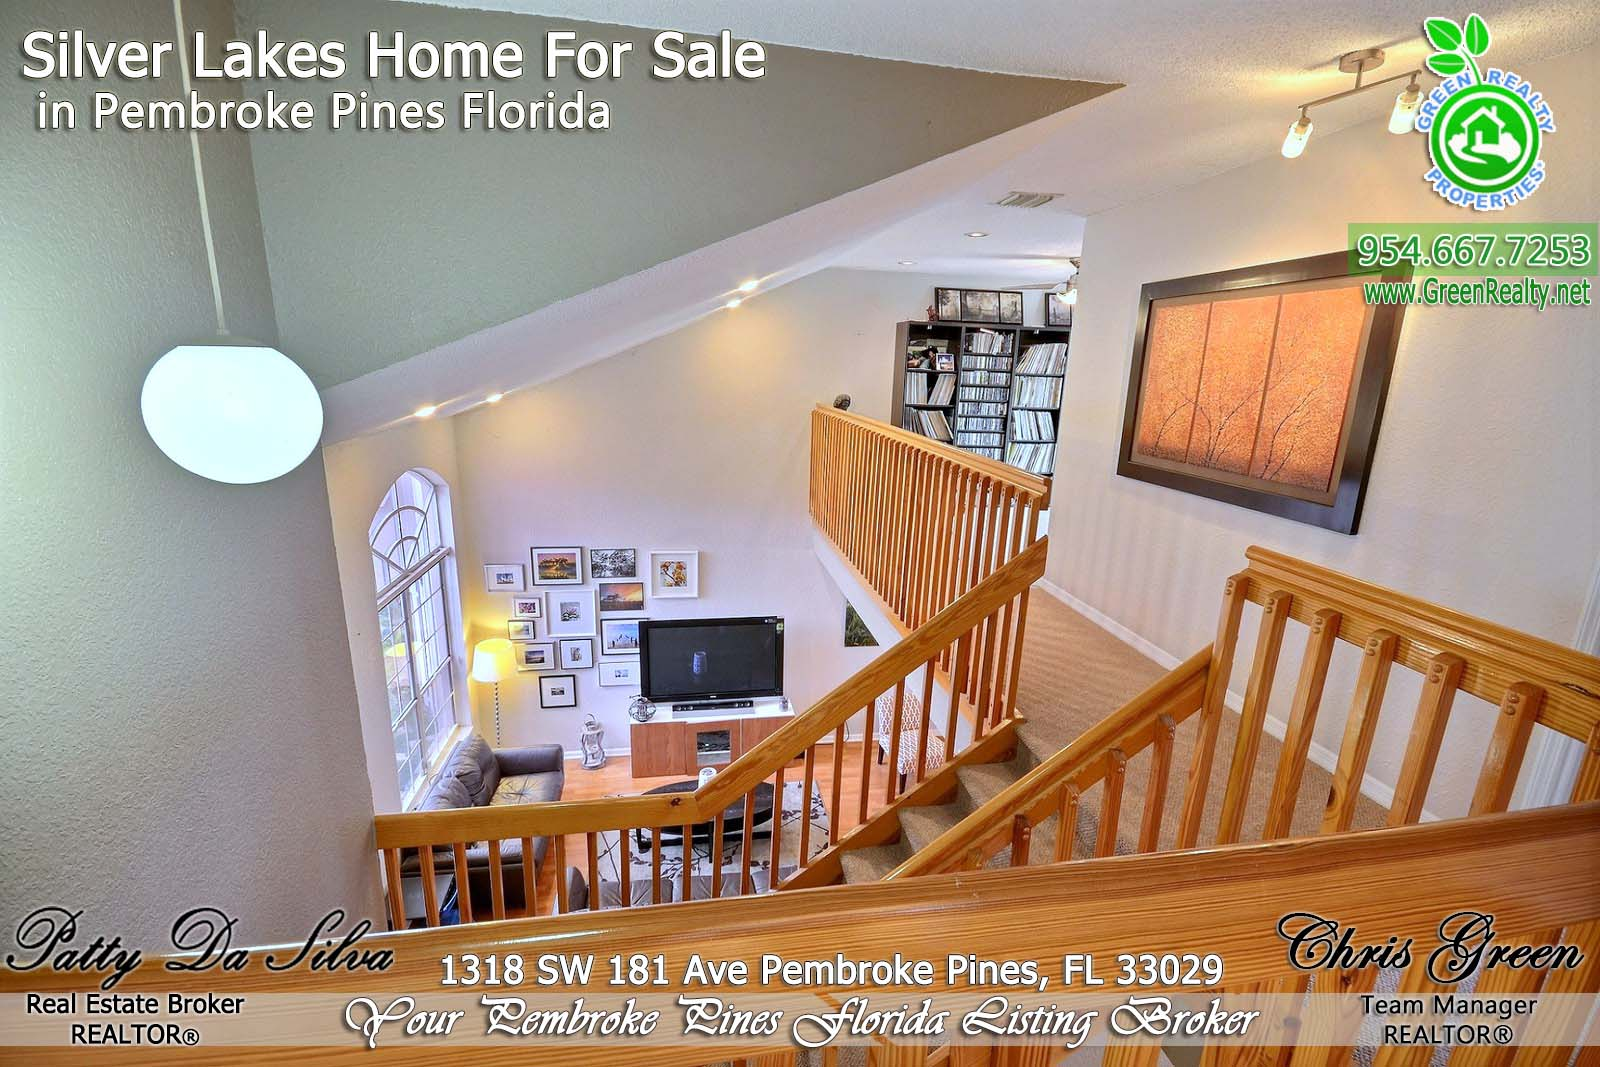 13 Silver Lakes Pembroke Pines Homes For Sale (1)